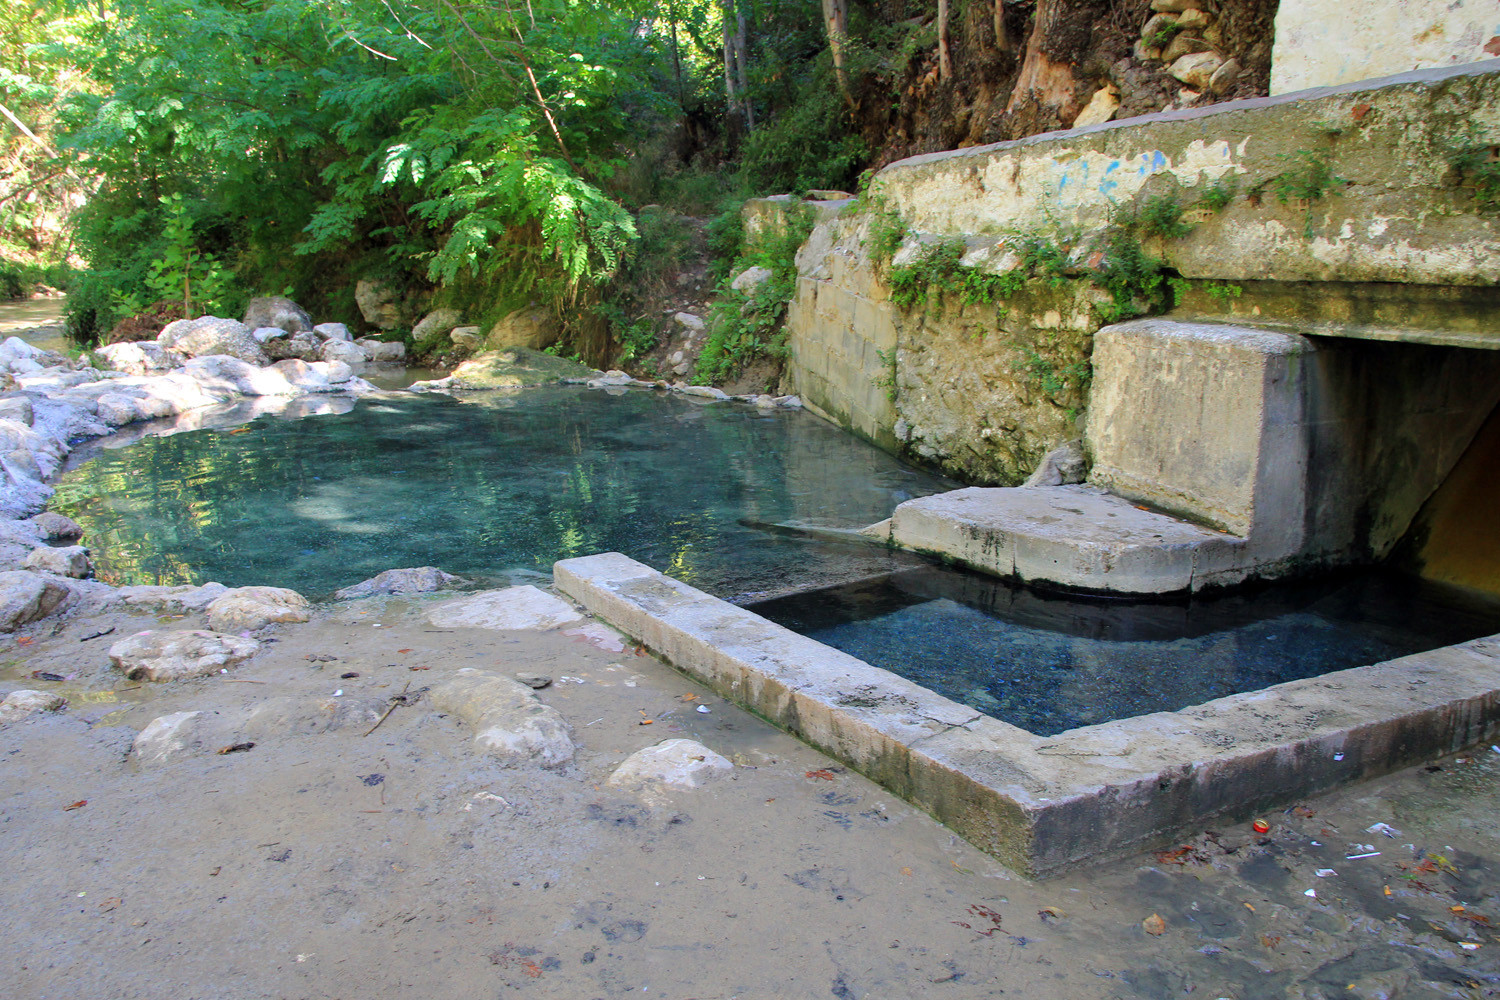 The Termal Bath next to the Alhama River